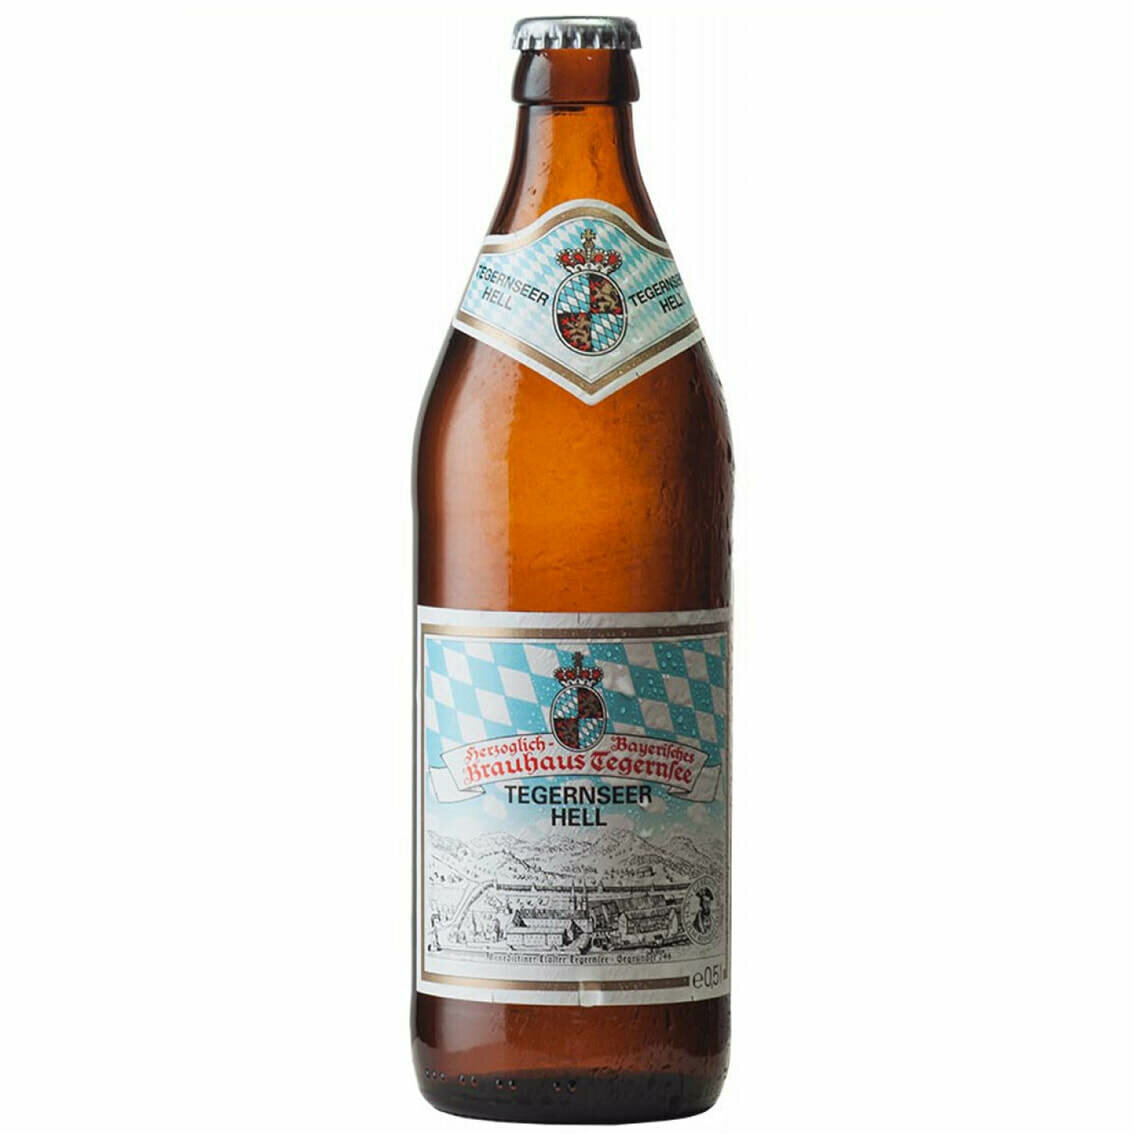 Tegernsee Helles Lager